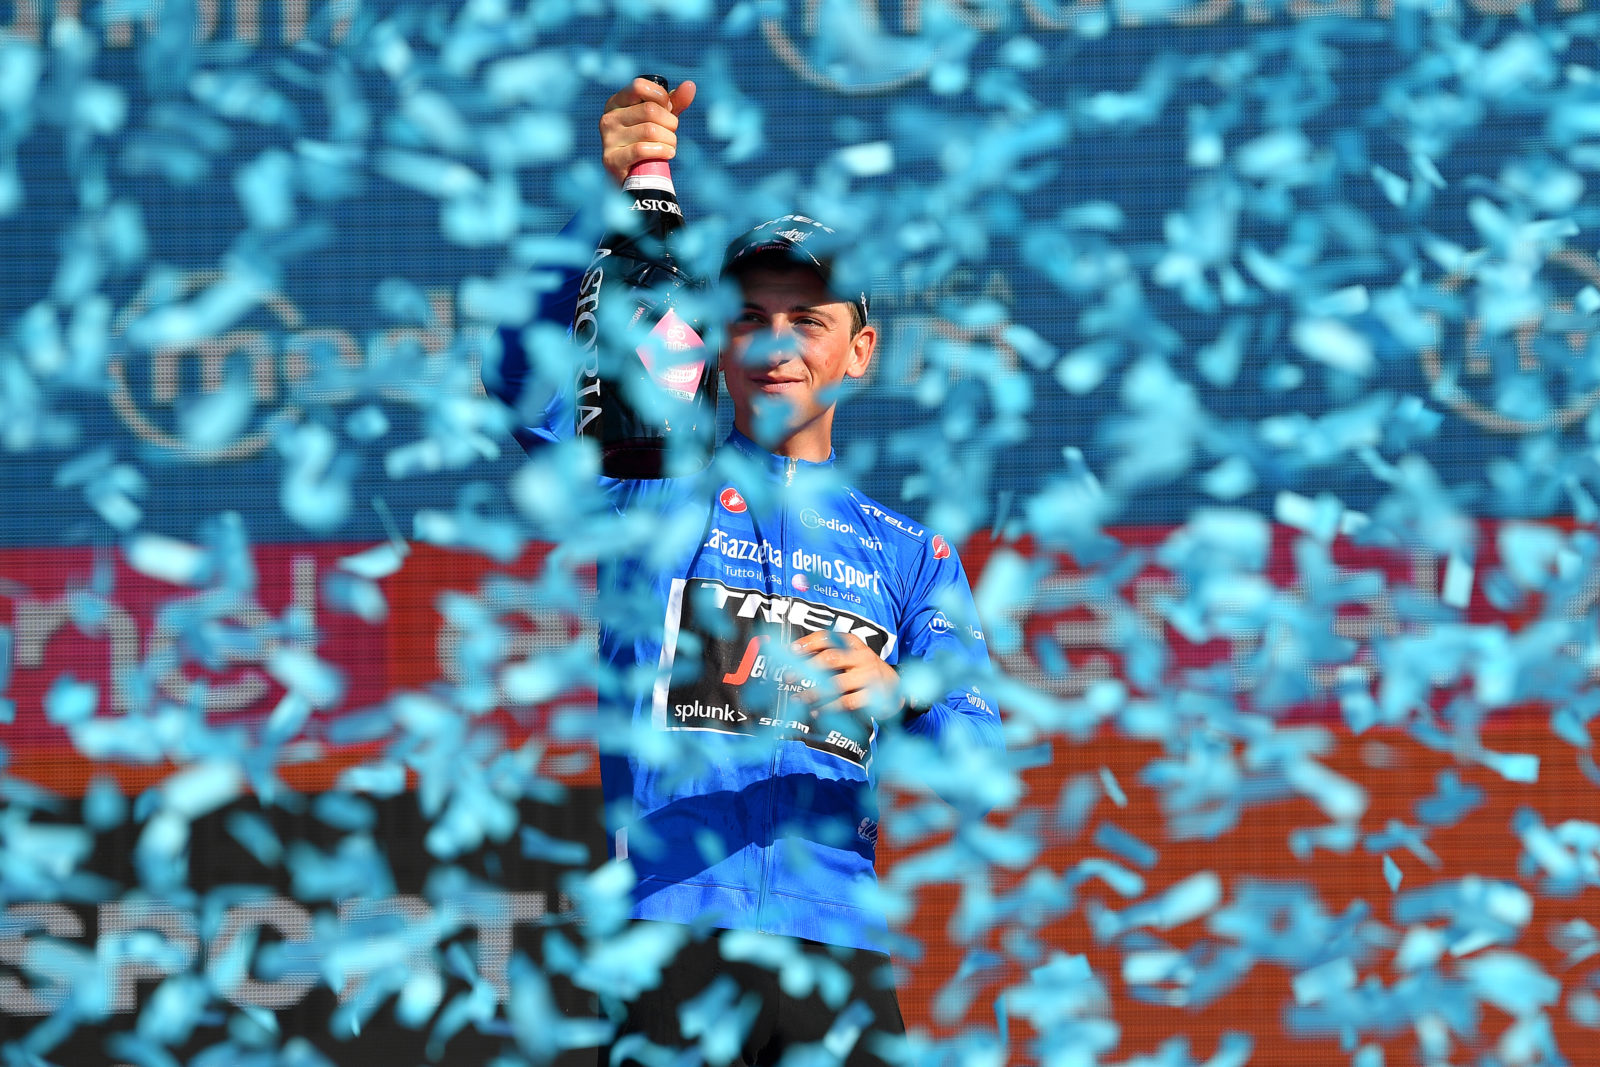 VERONA, ITALY - JUNE 02: Podium / Giulio Ciccone of Italy and Team Trek - Segafredo Blue Mountain Jersey / Celebration / Champagne / during the 102nd Giro d'Italia 2019, Stage 21 a 17km Individual Time Trial stage from Verona - Fiera to Verona - Arena / ITT / Amphitheatre / Arena di Verona / Tour of Italy / #Giro / @giroditalia / on June 02, 2019 in Verona, Italy. (Photo by Justin Setterfield/Getty Images)